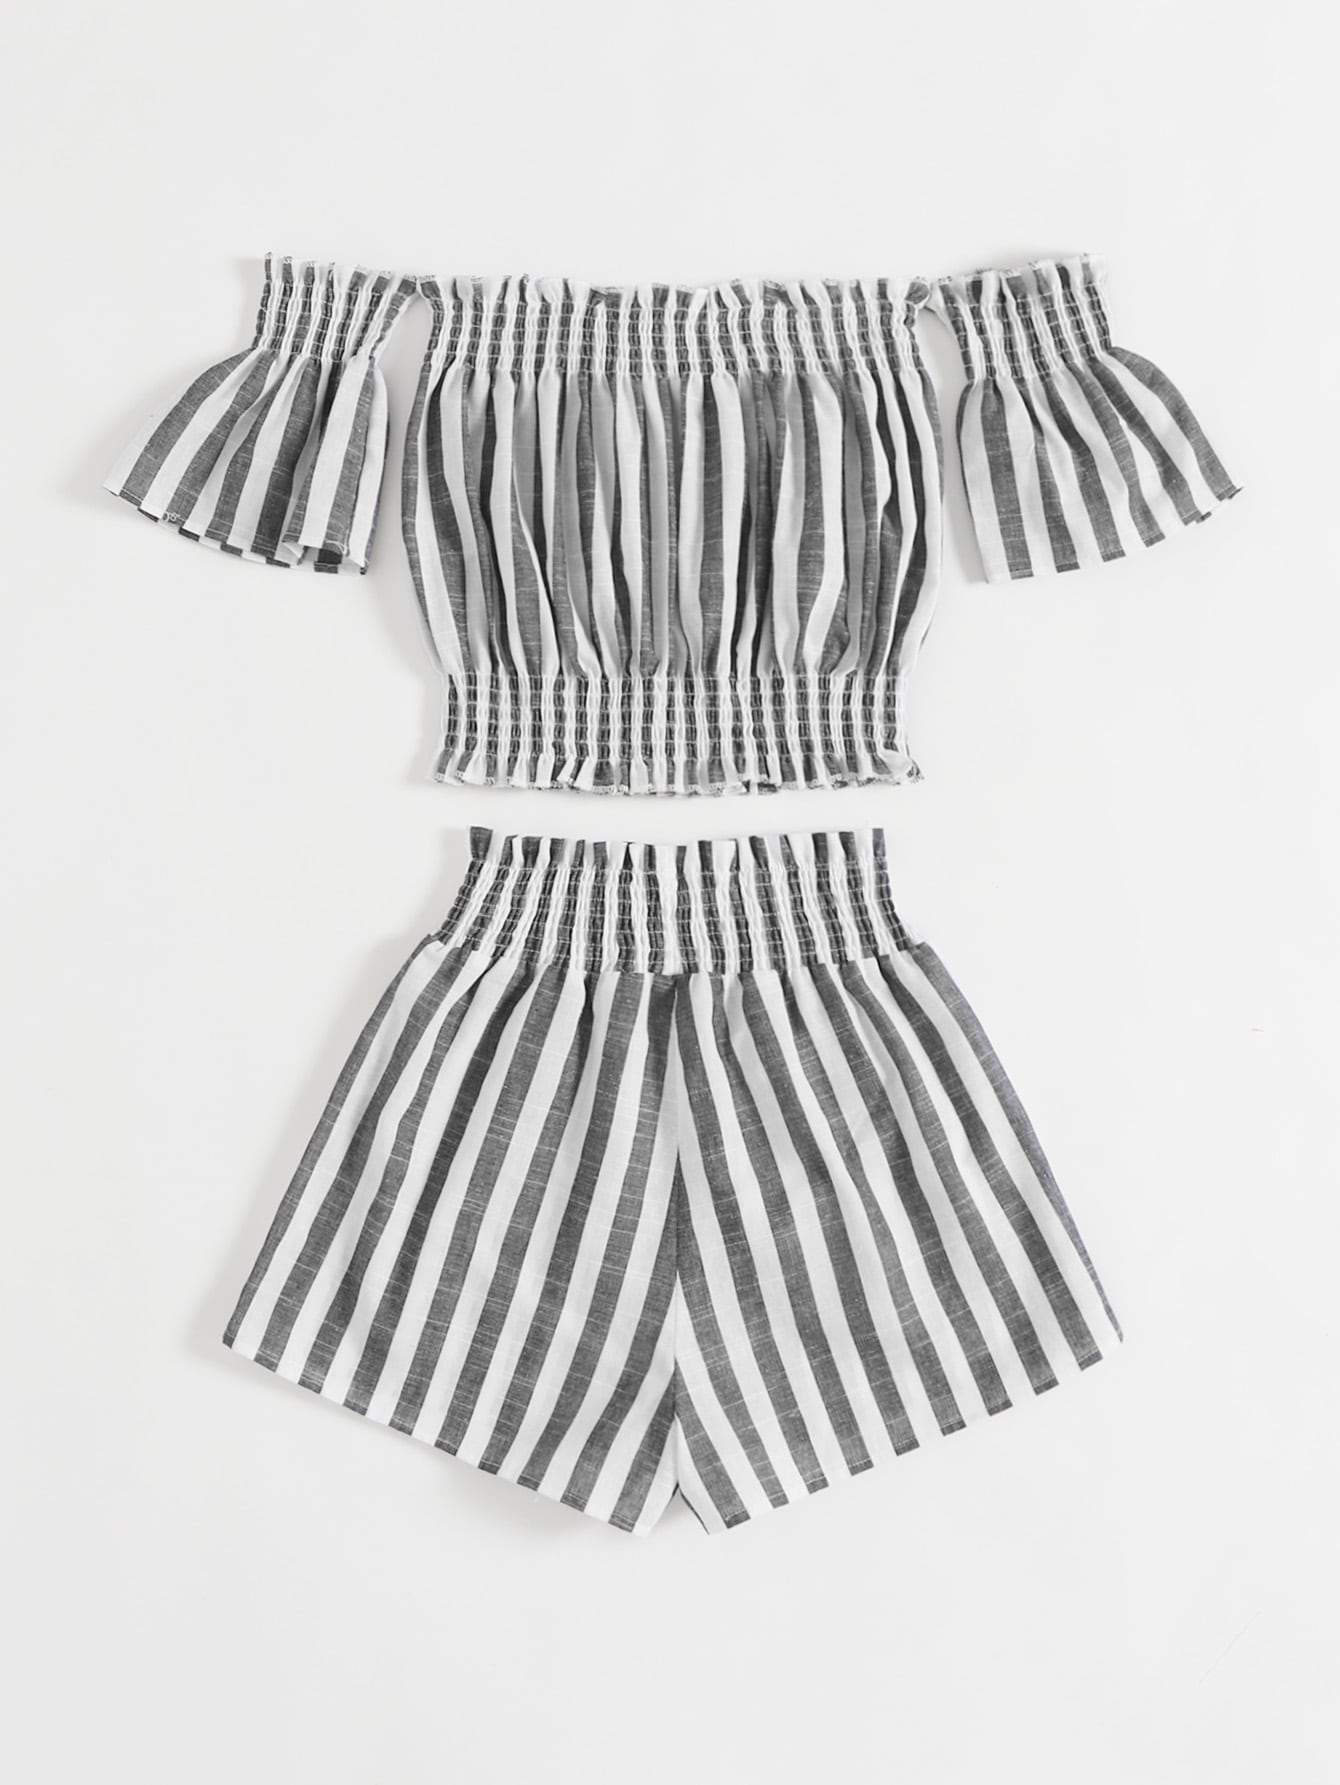 Striped Shirred Frill Trim Bardot Top & Shorts - FLJ CORPORATIONS